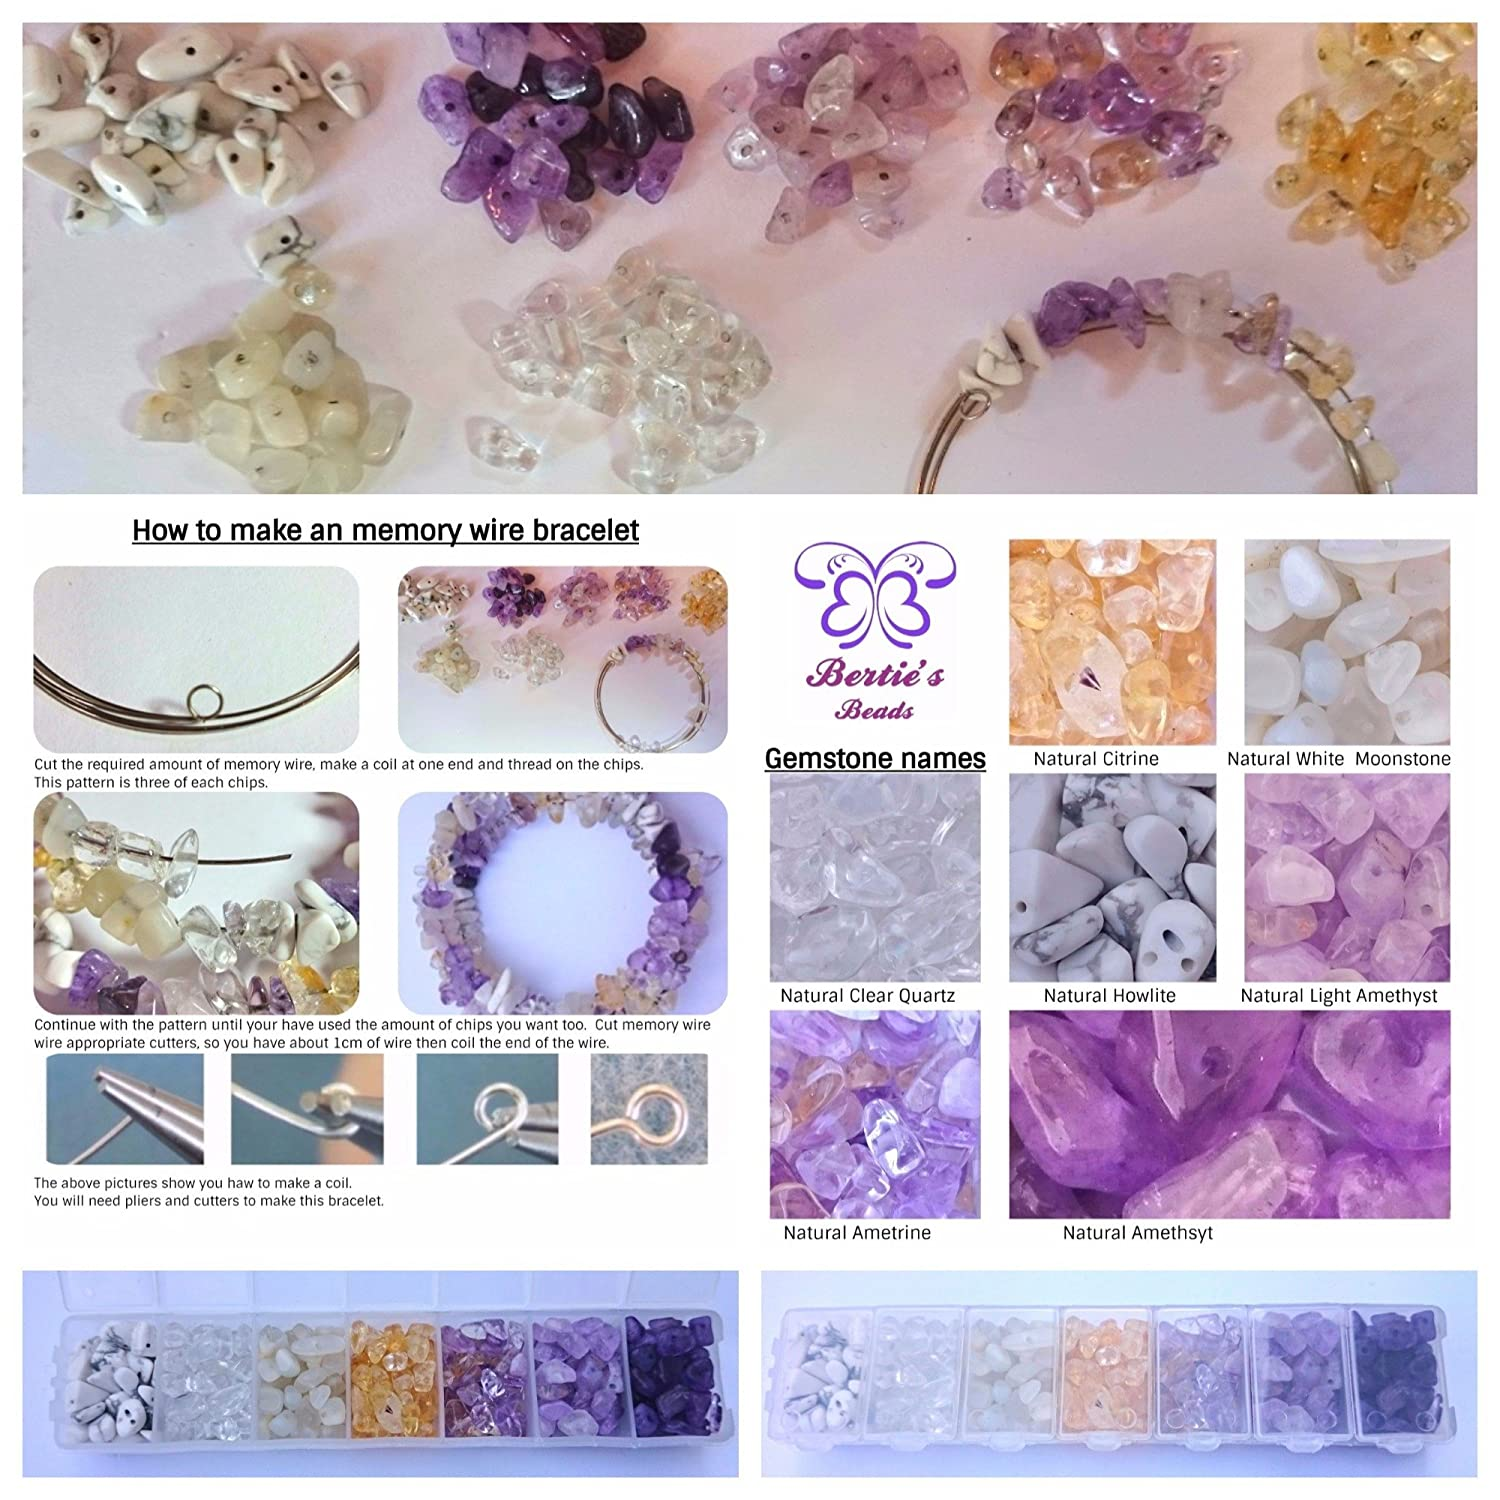 Berties Beads Gemstone Memory Wire Kit instructions included but not pliers or cutters